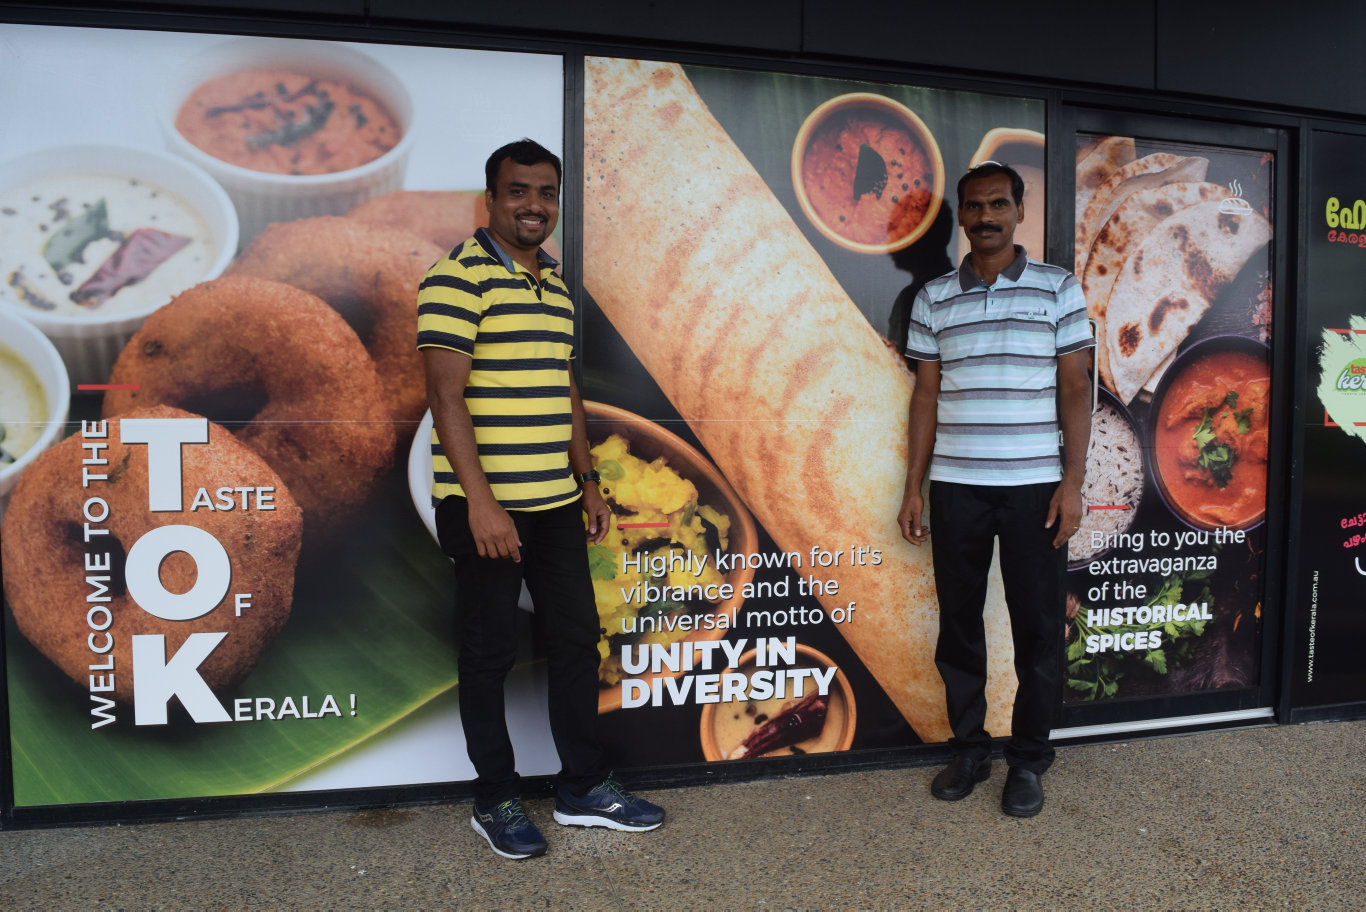 Jibin Jacob and Joji Joseph outside Taste of Kerala.